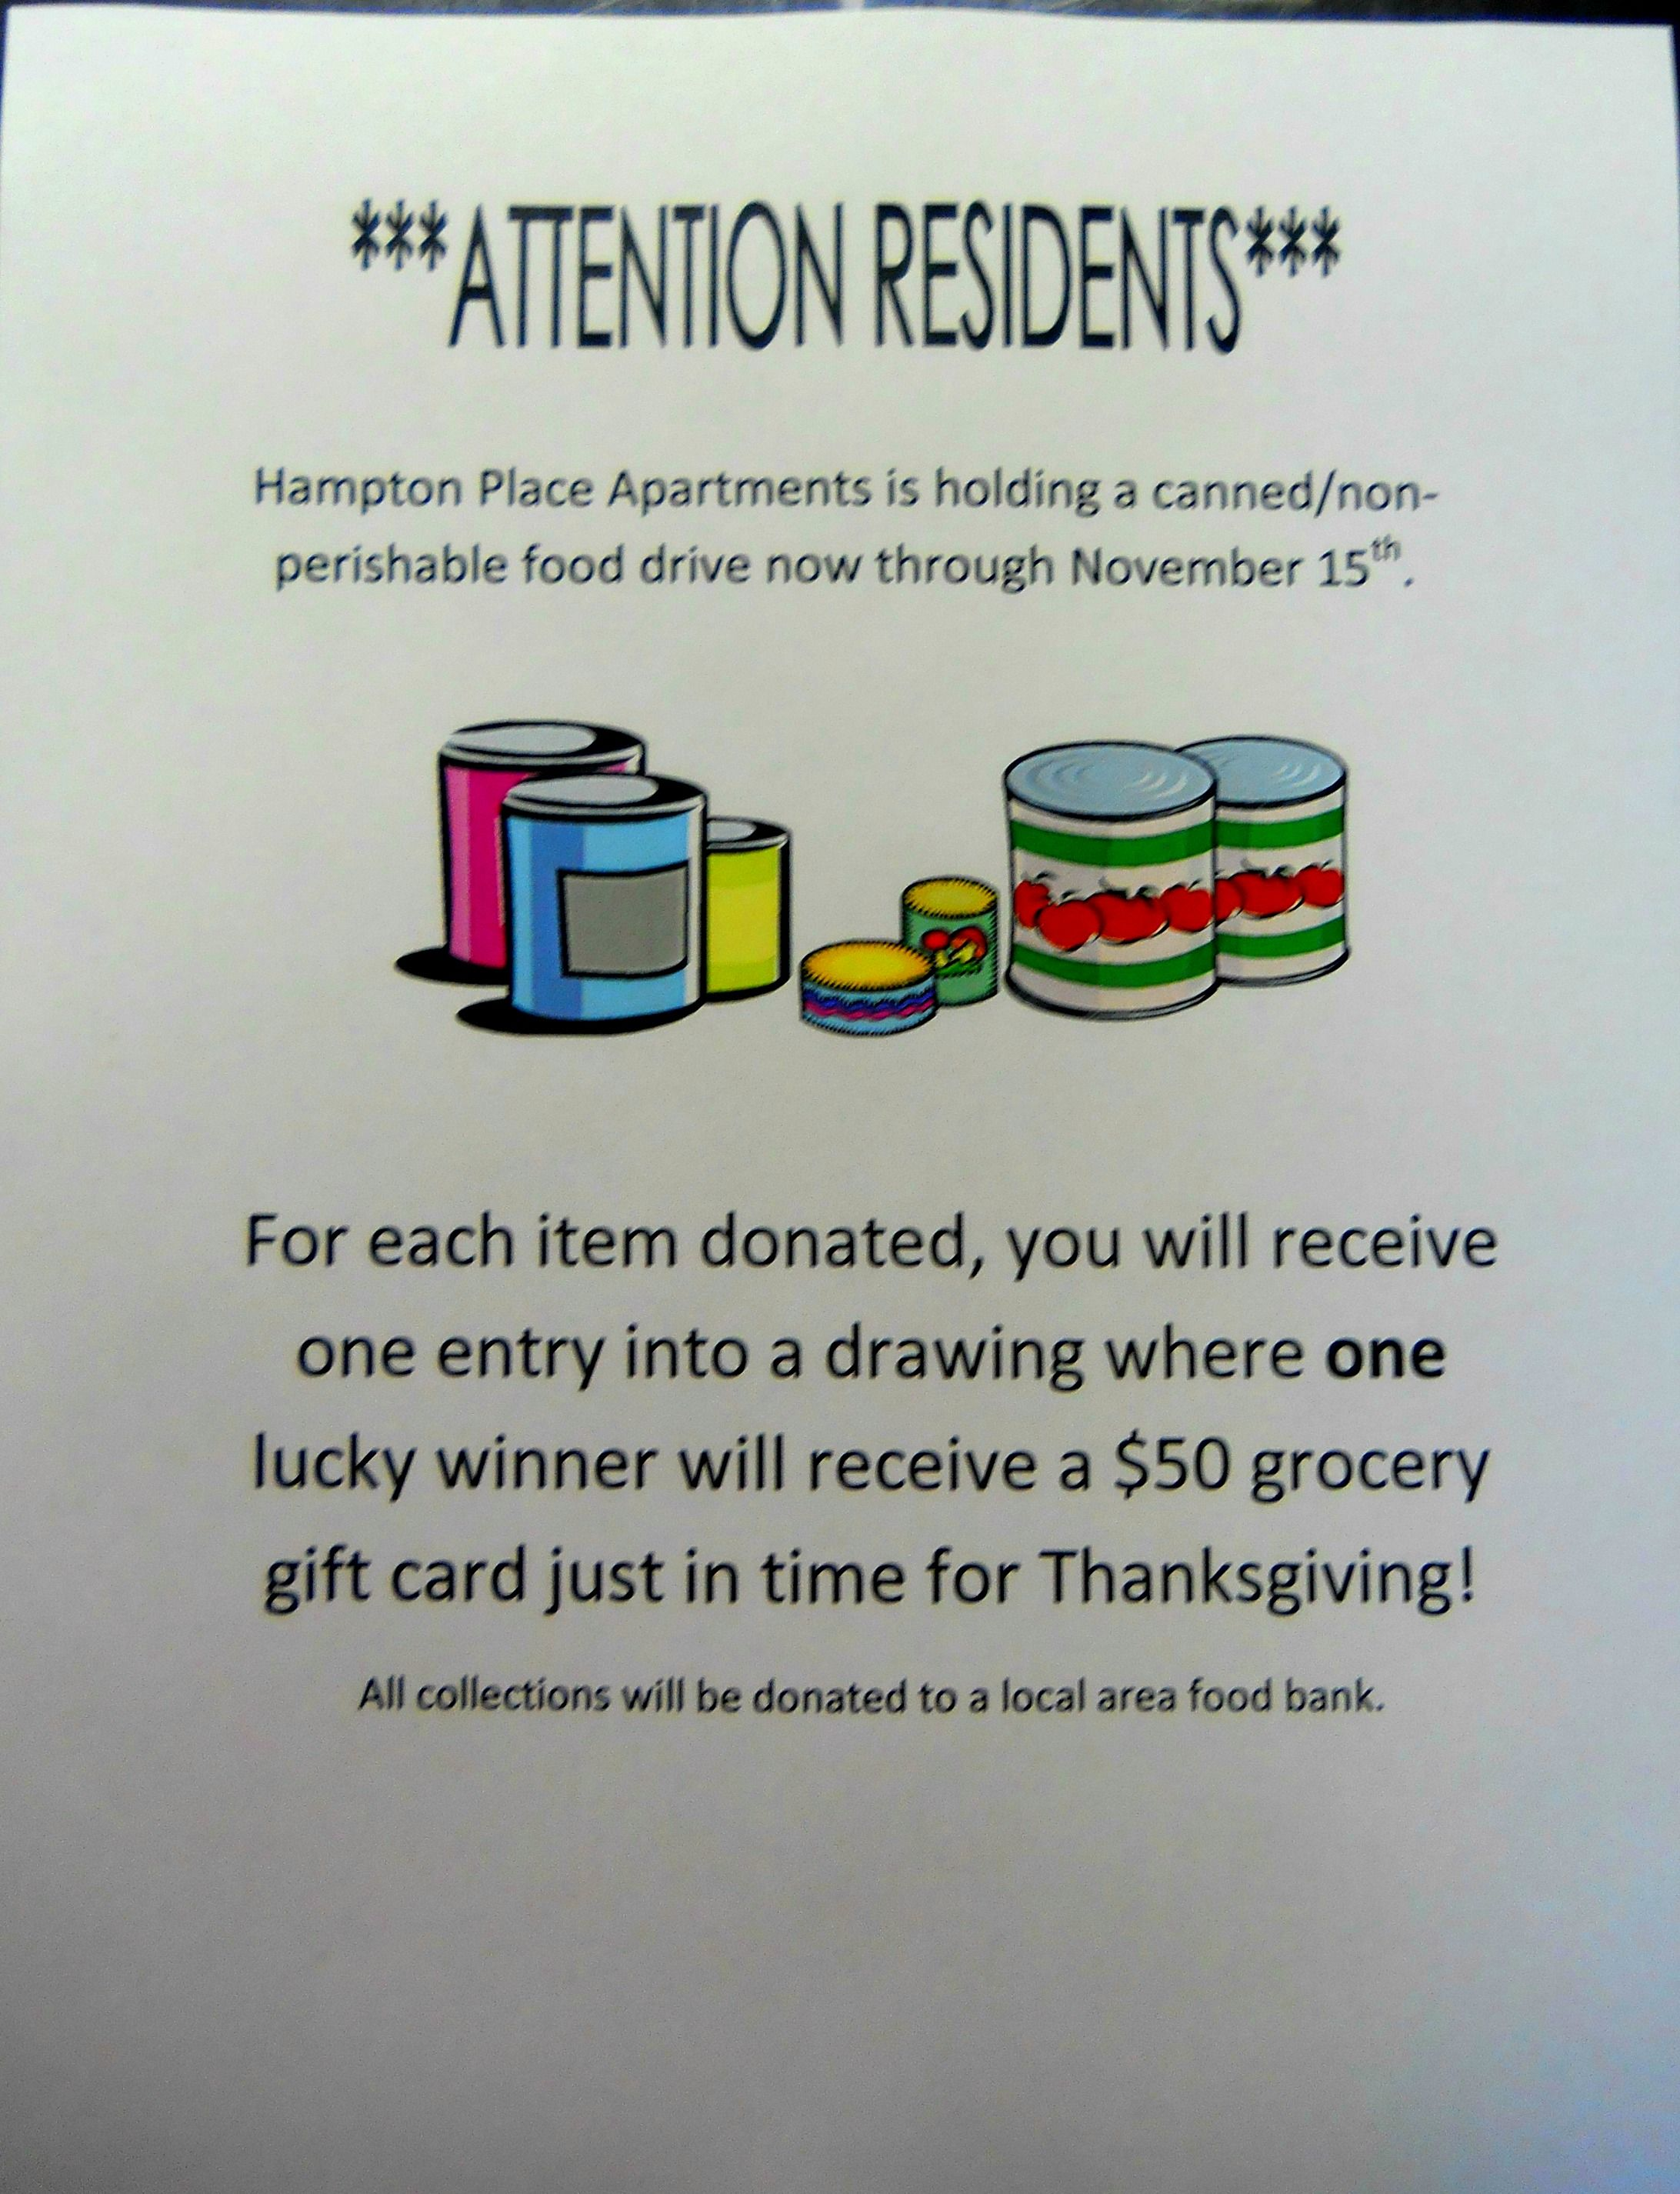 Pin By Sarah Taylor On Our Community Food Pantry Food Drive Canned Food Drive